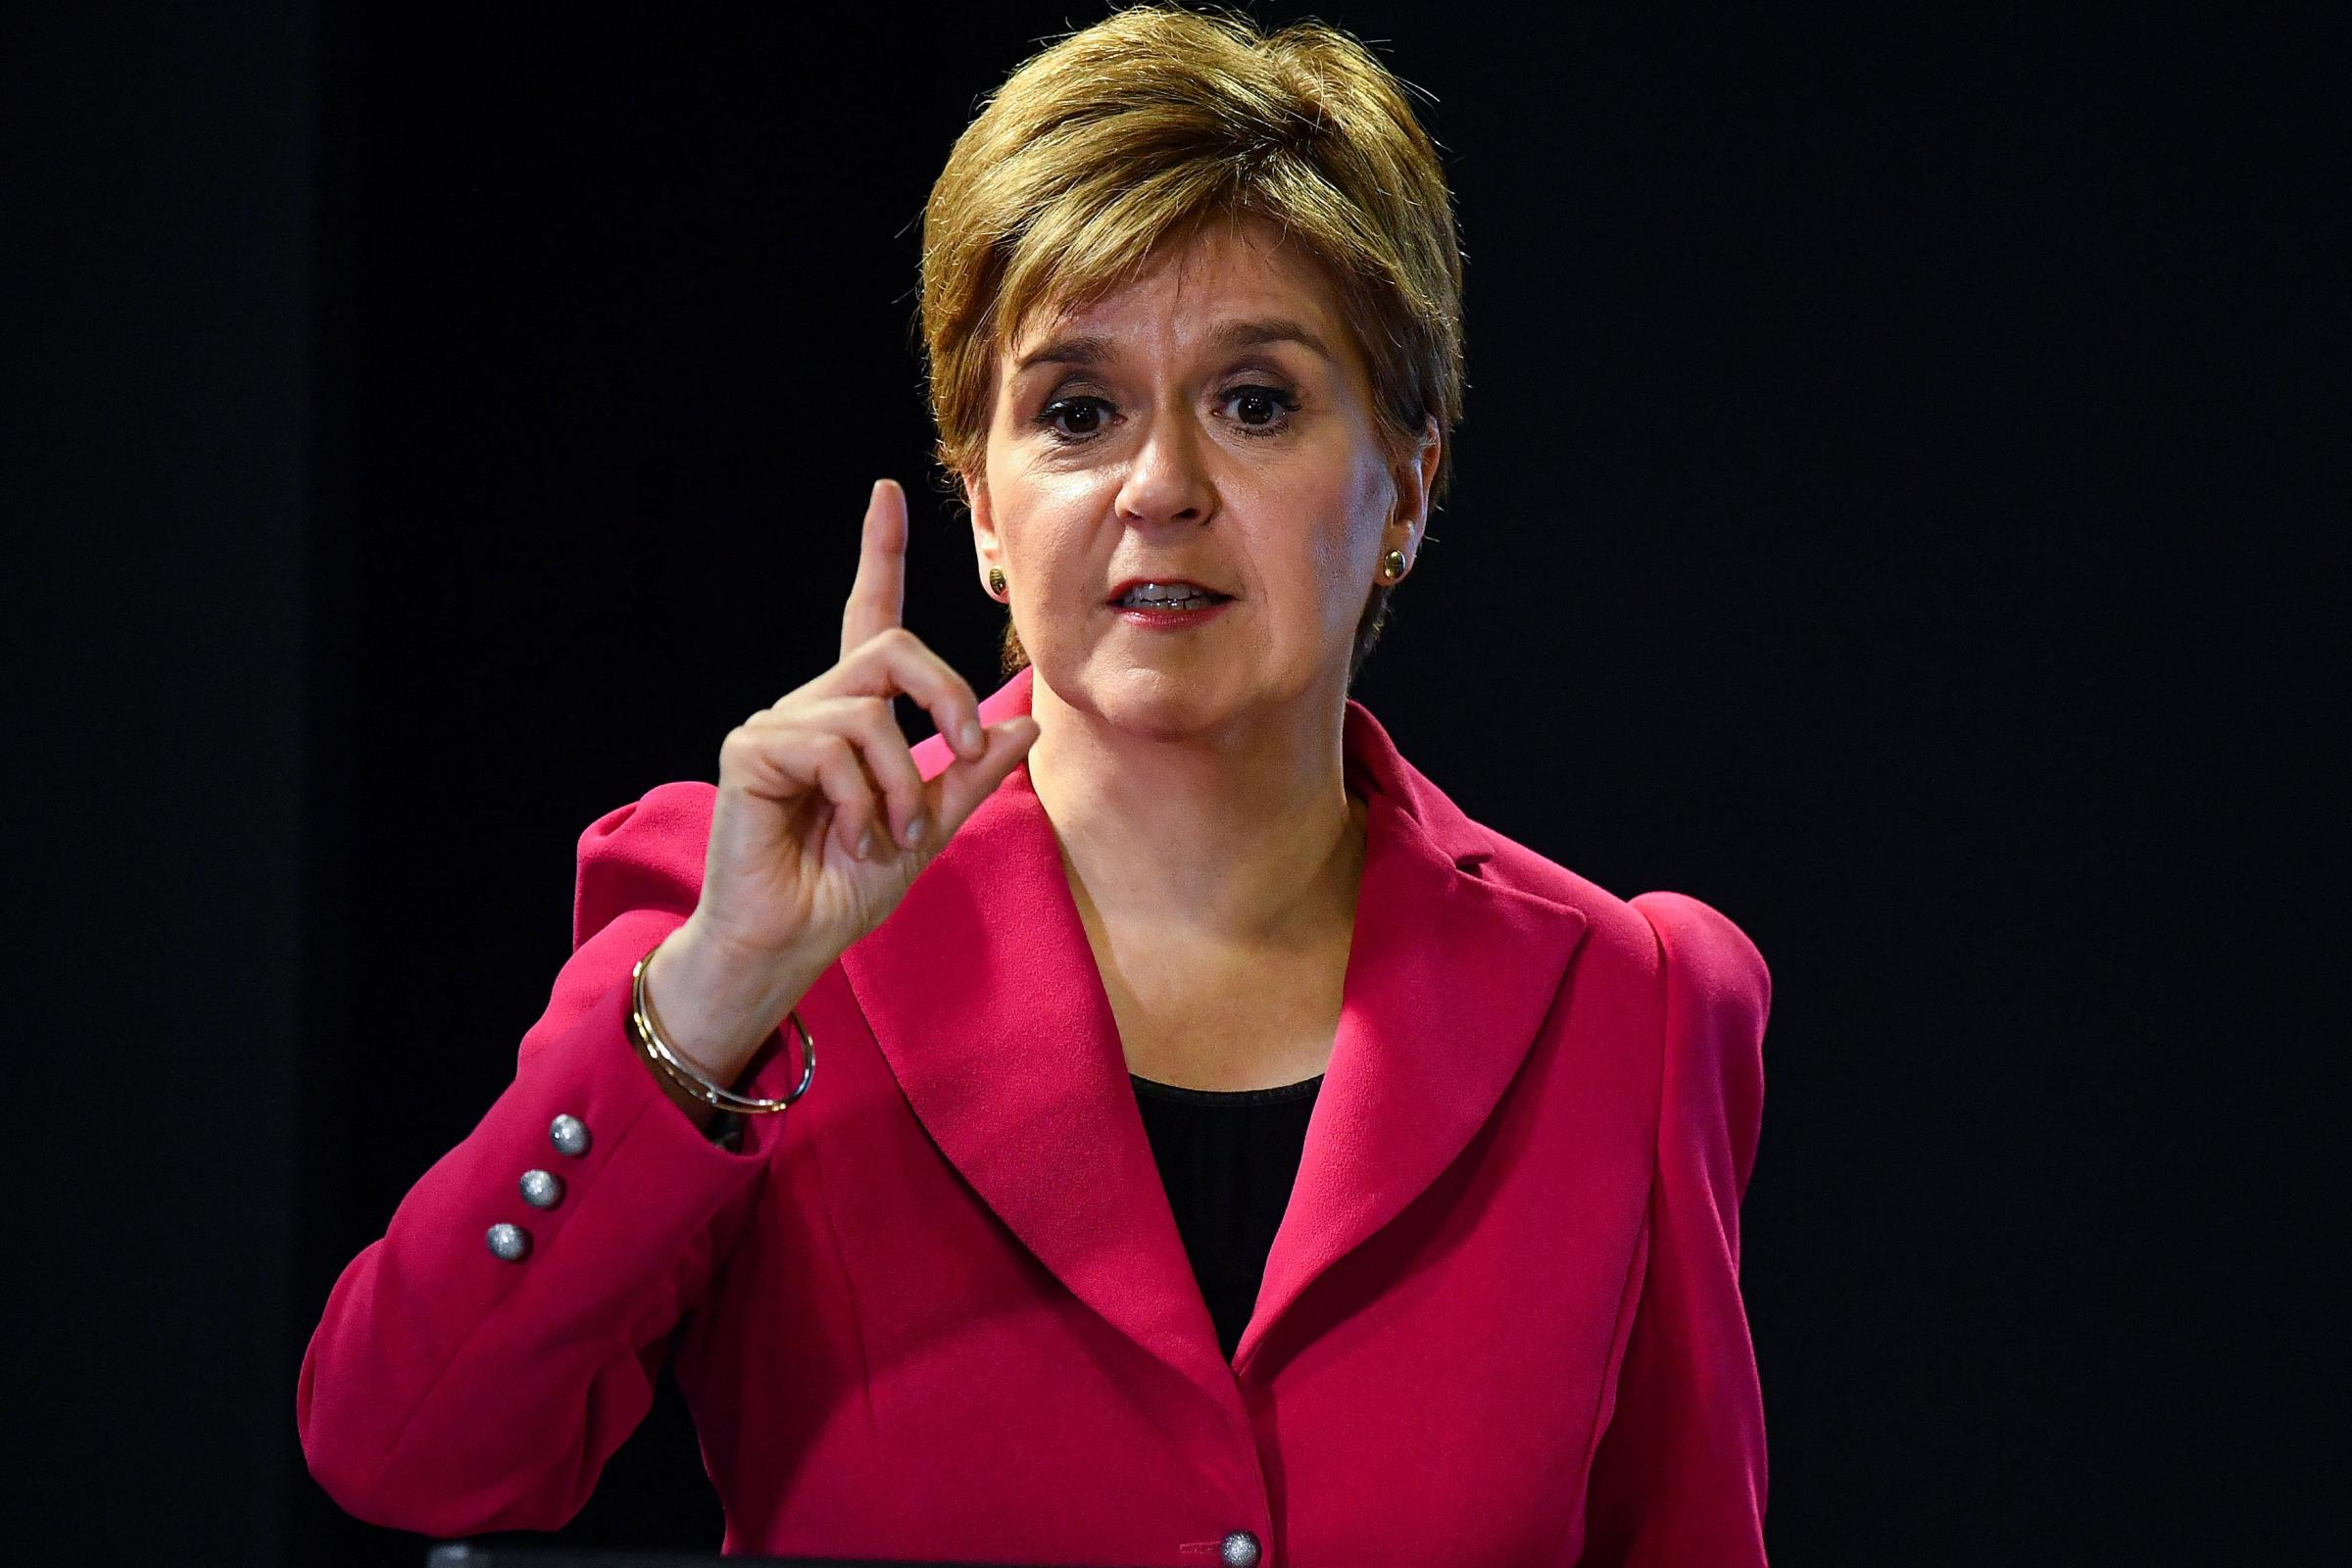 The New Normal First Minister Calls For United Effort To Build A